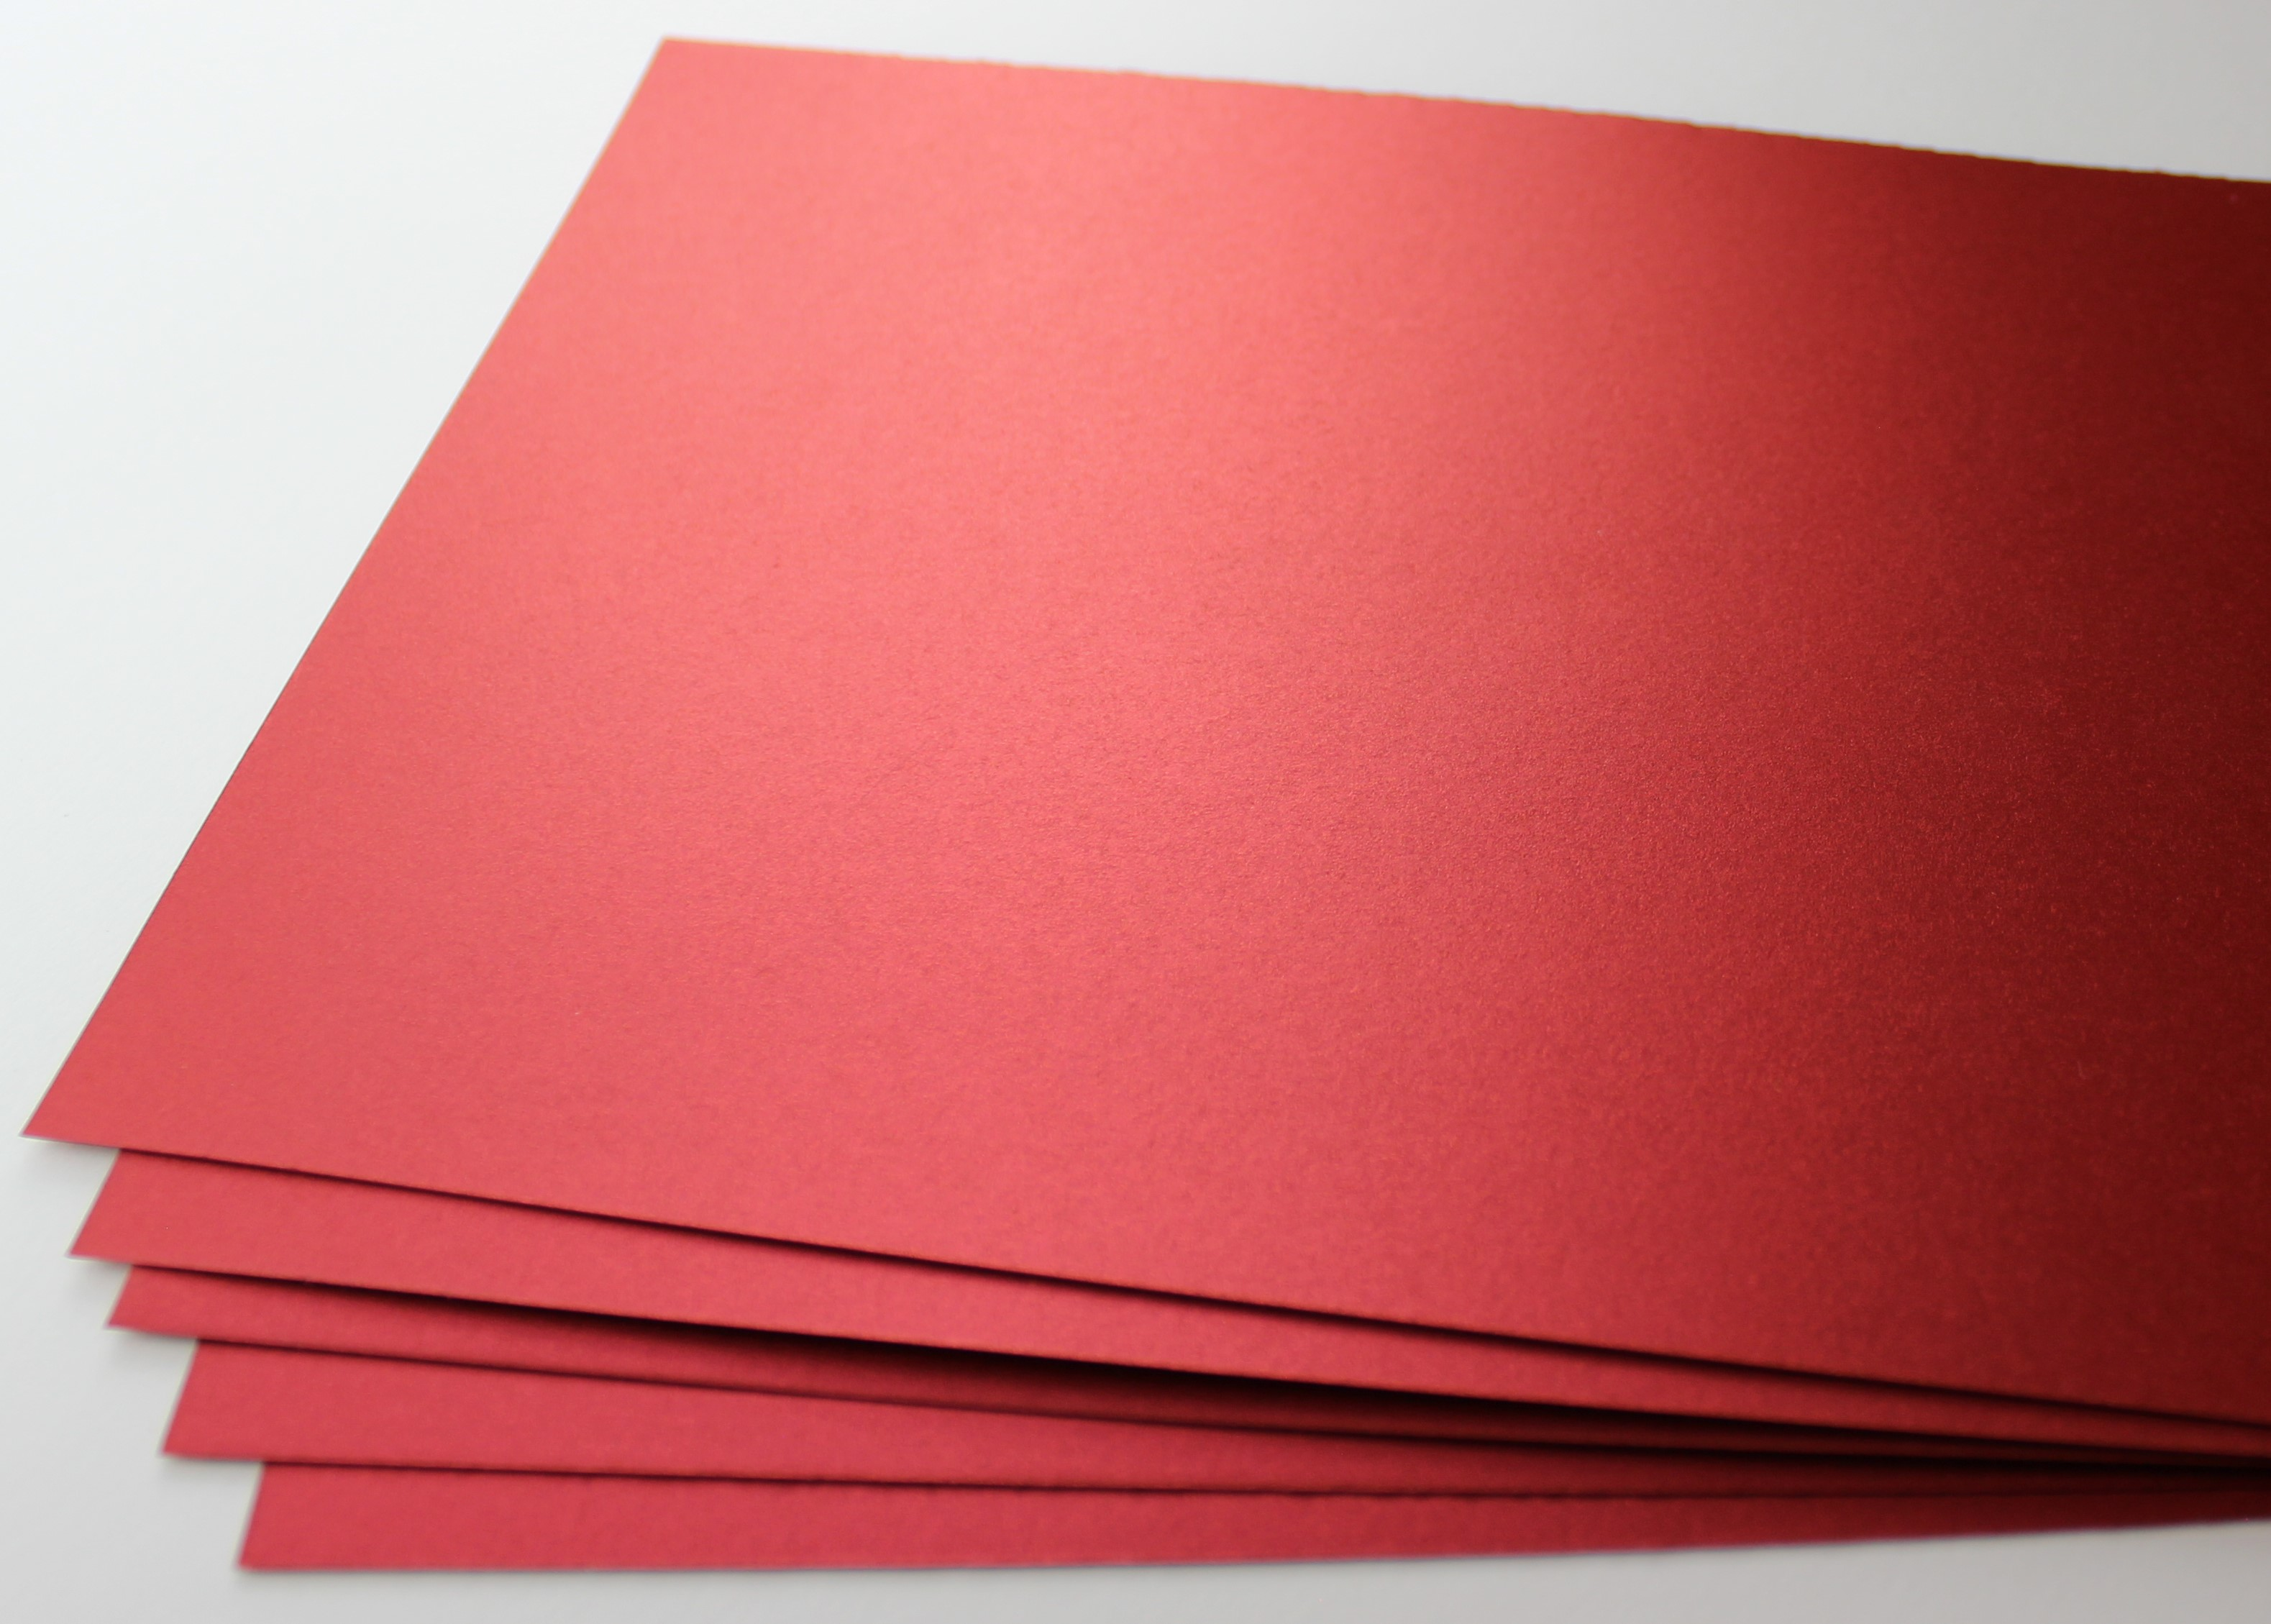 100 Blatt A4 (210x297mm) Inapa Shyne Papier 120 g/qm red diamond